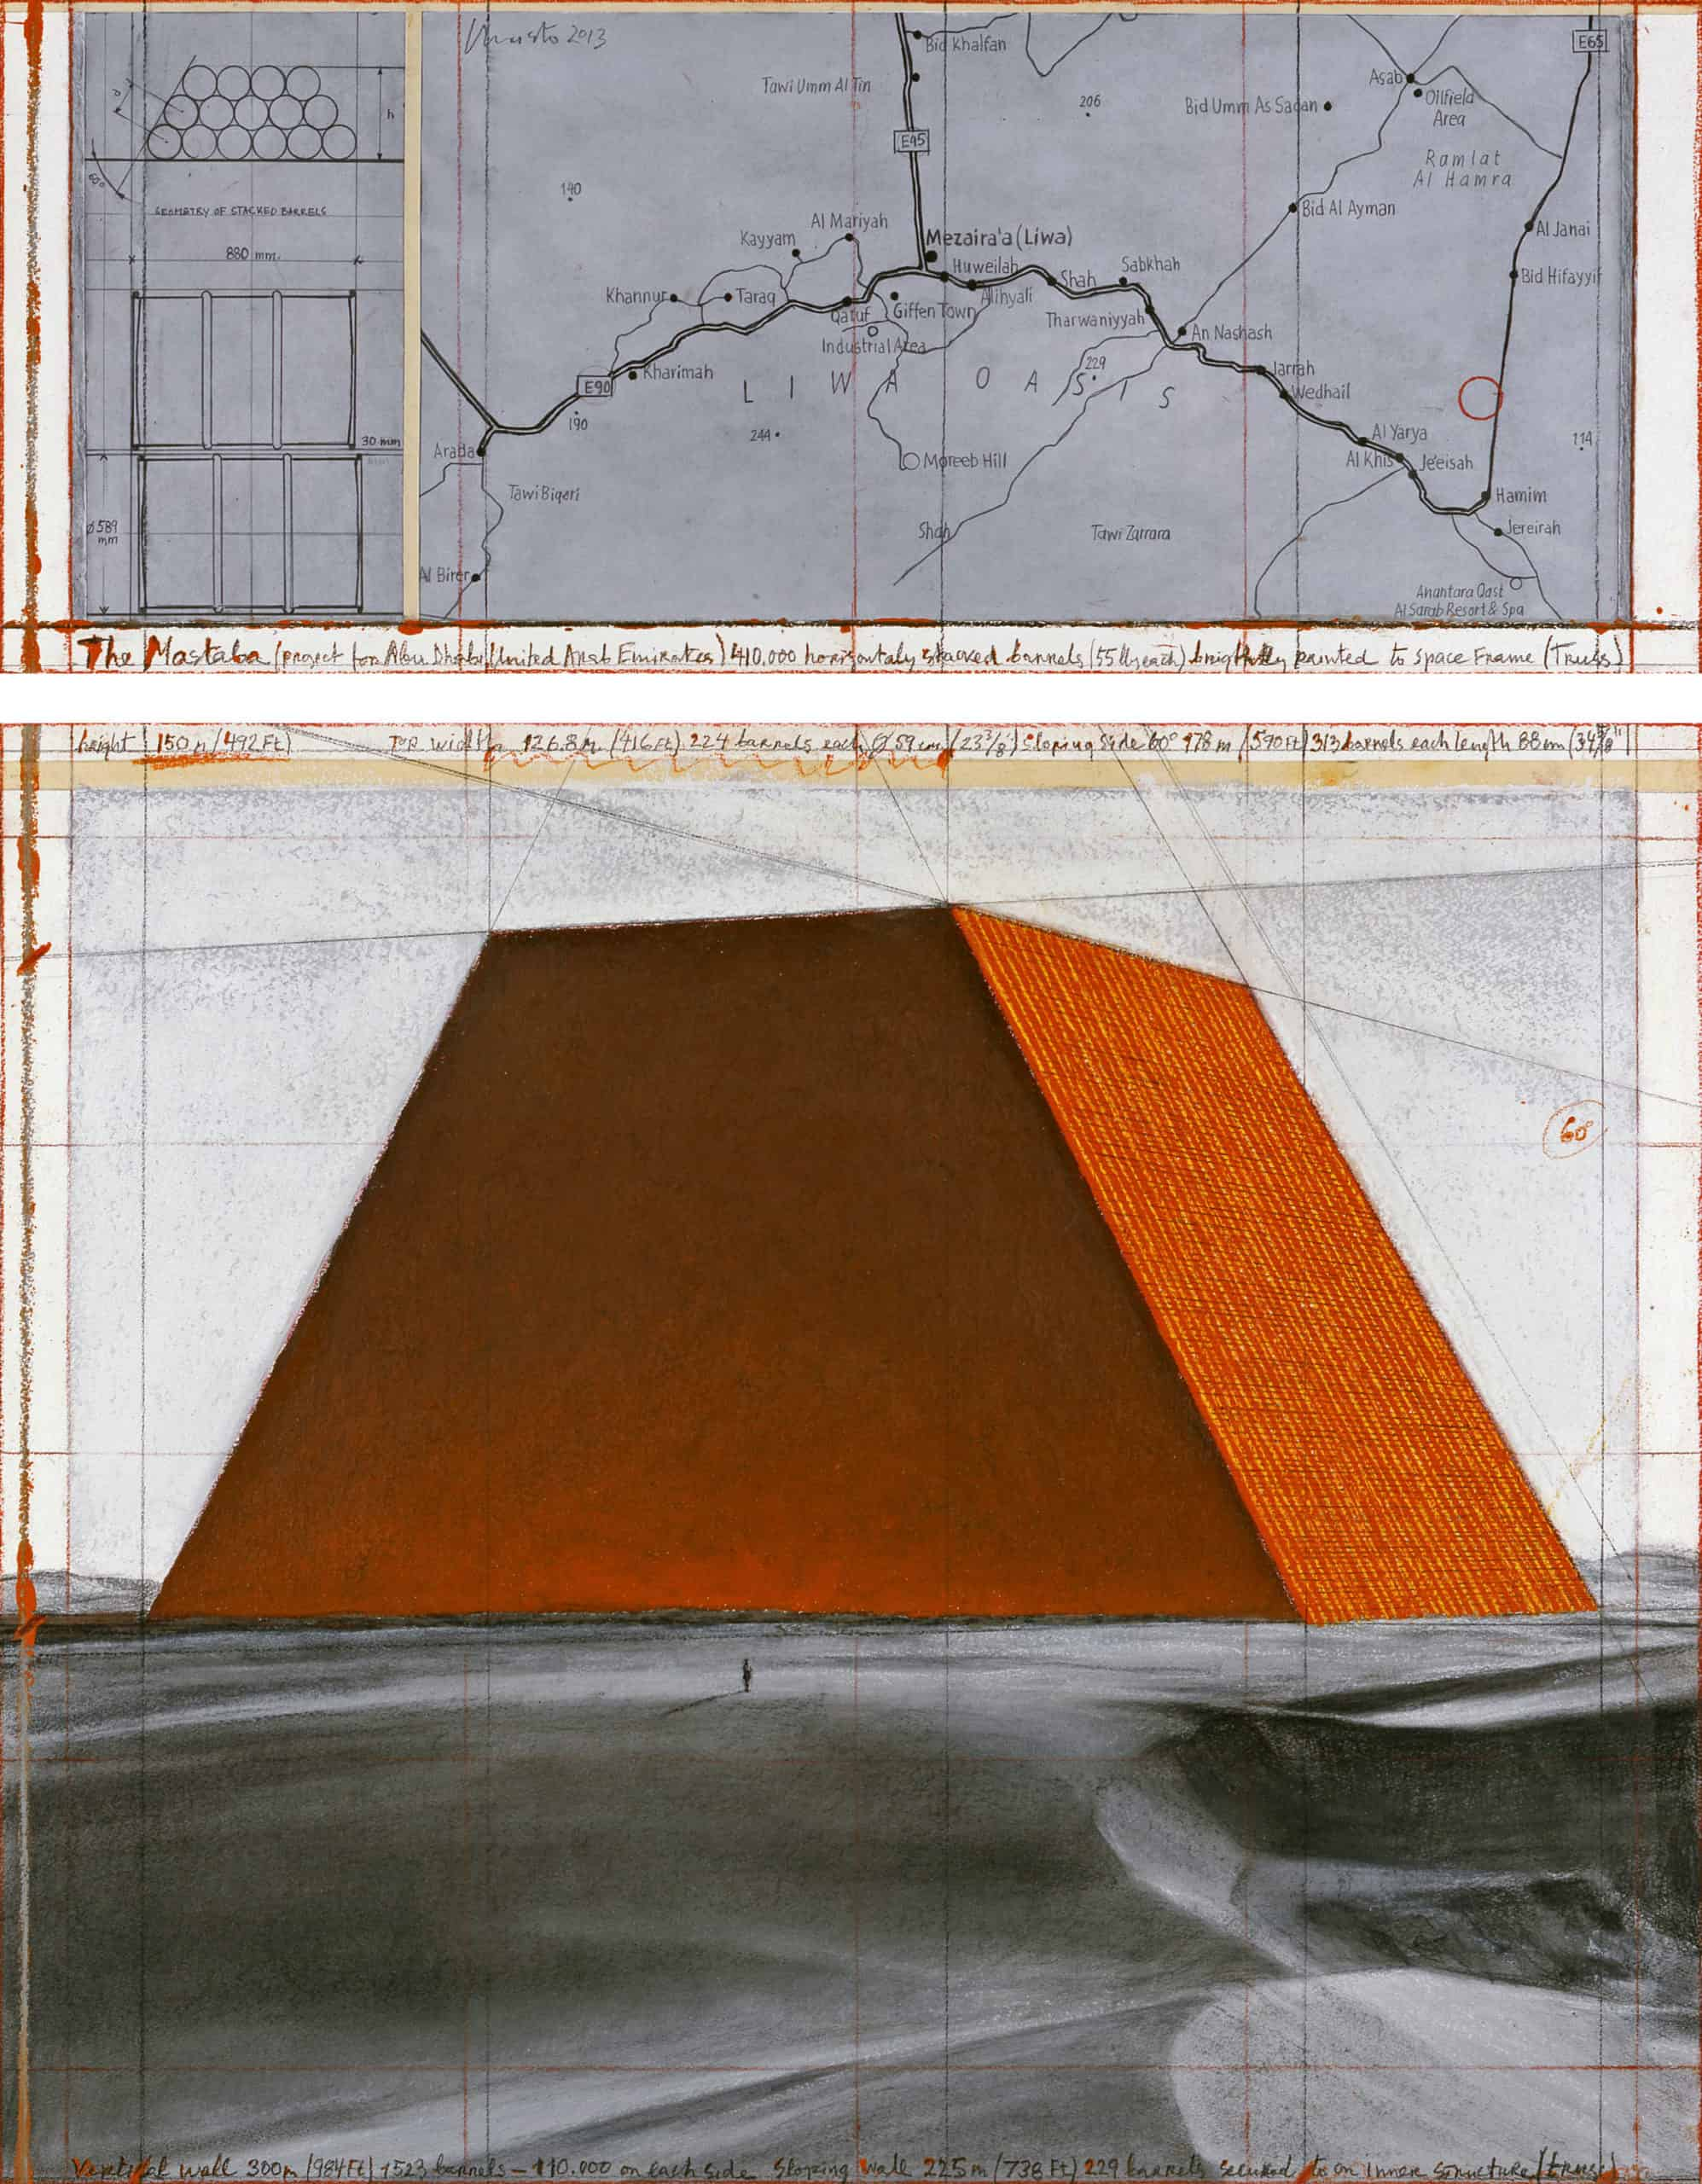 The Mastaba (Project for Abu Dhabi, United Arab Emirates ) drawing 2013 in two parts, photo: André Grossmann © 2013, Christo